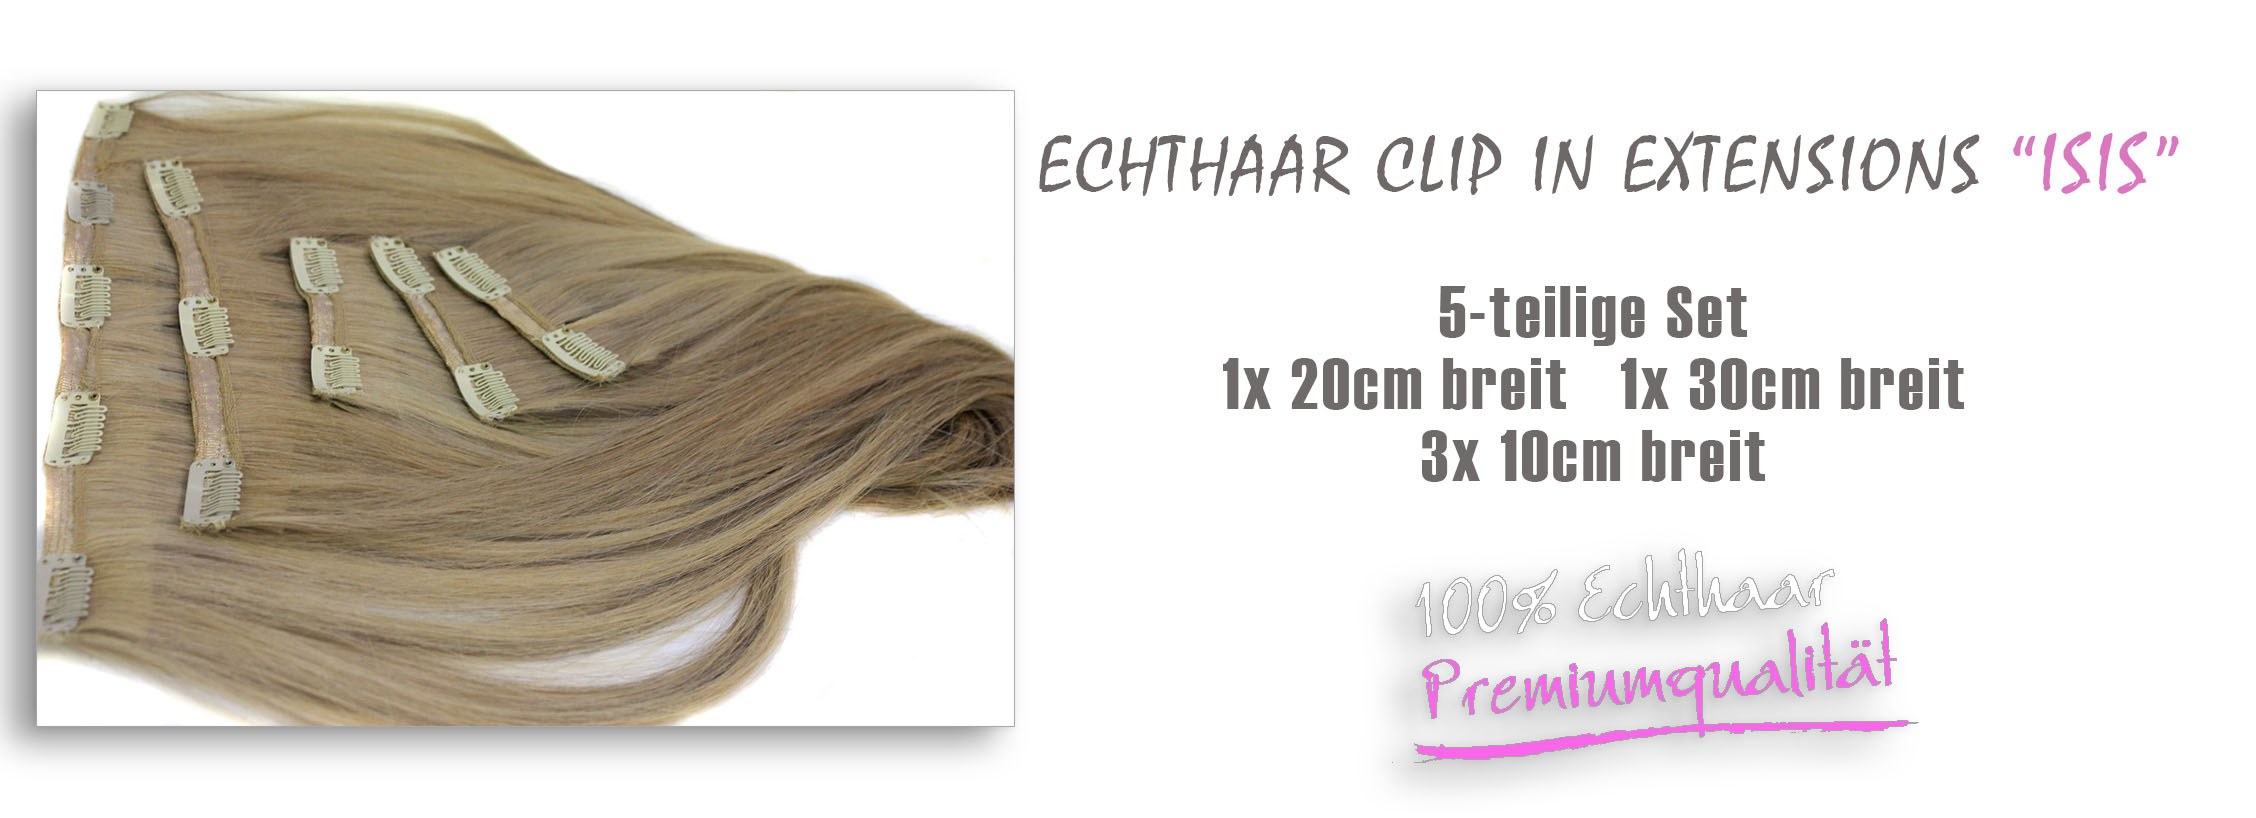 Echthaar Clip in Extensions ISIS